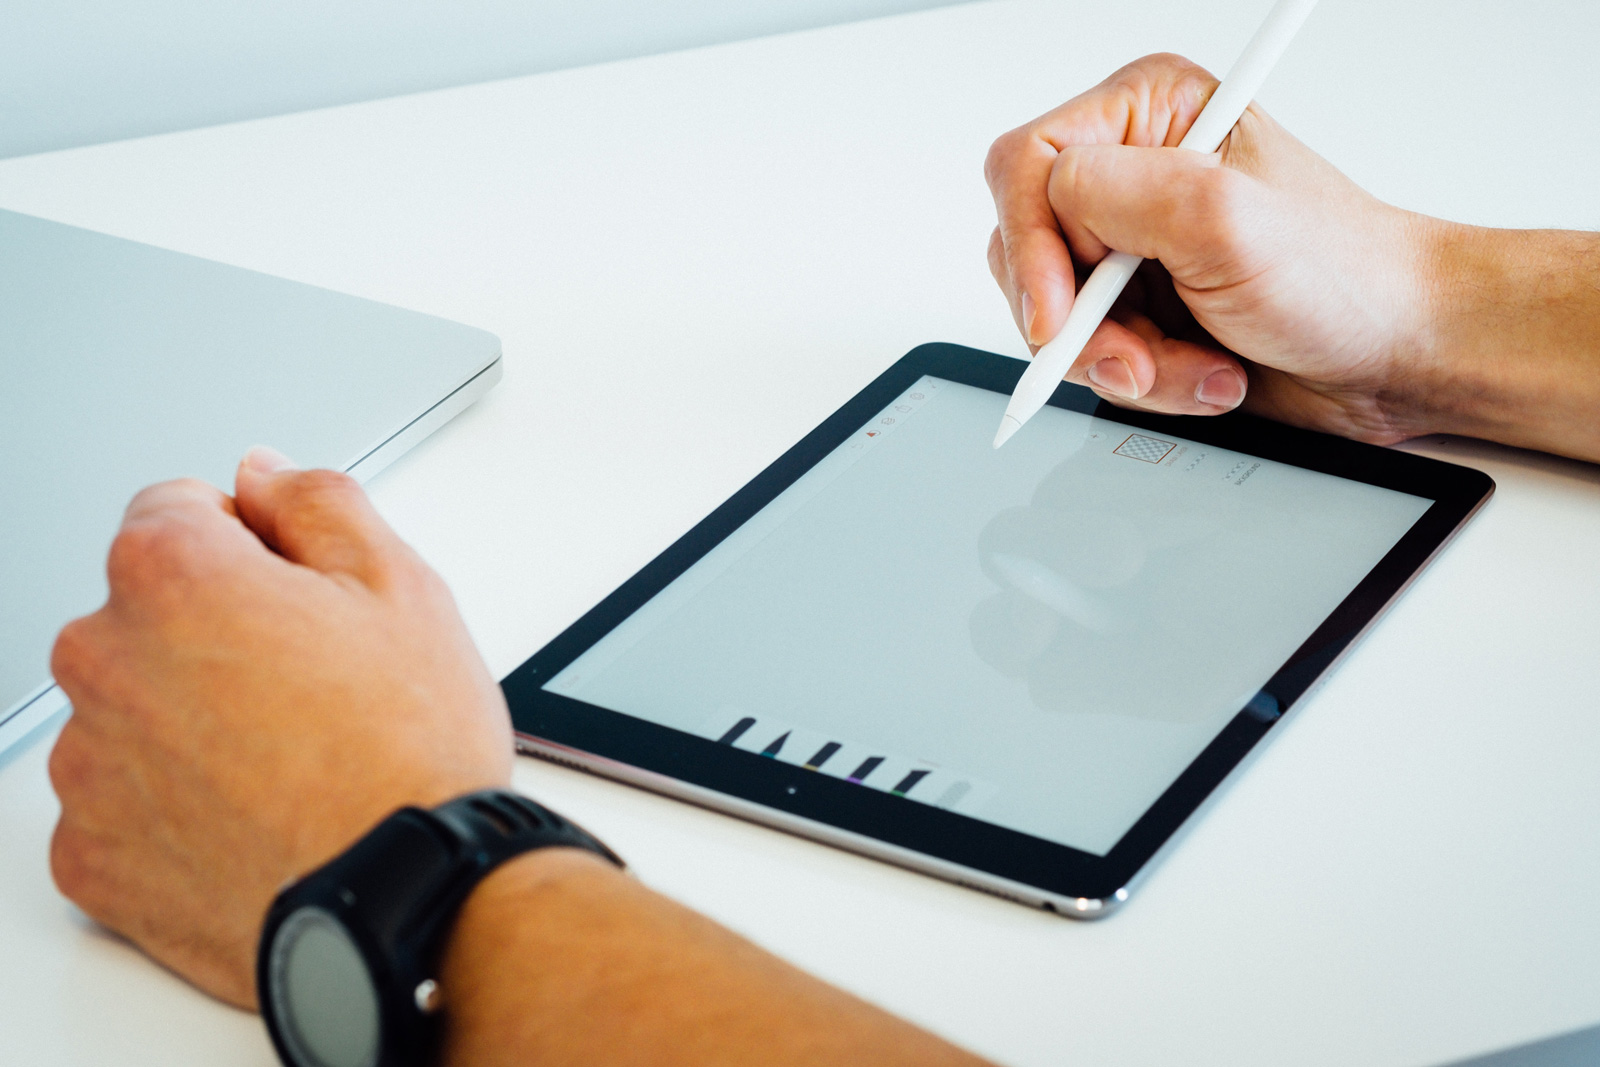 An artist drawing on a tablet